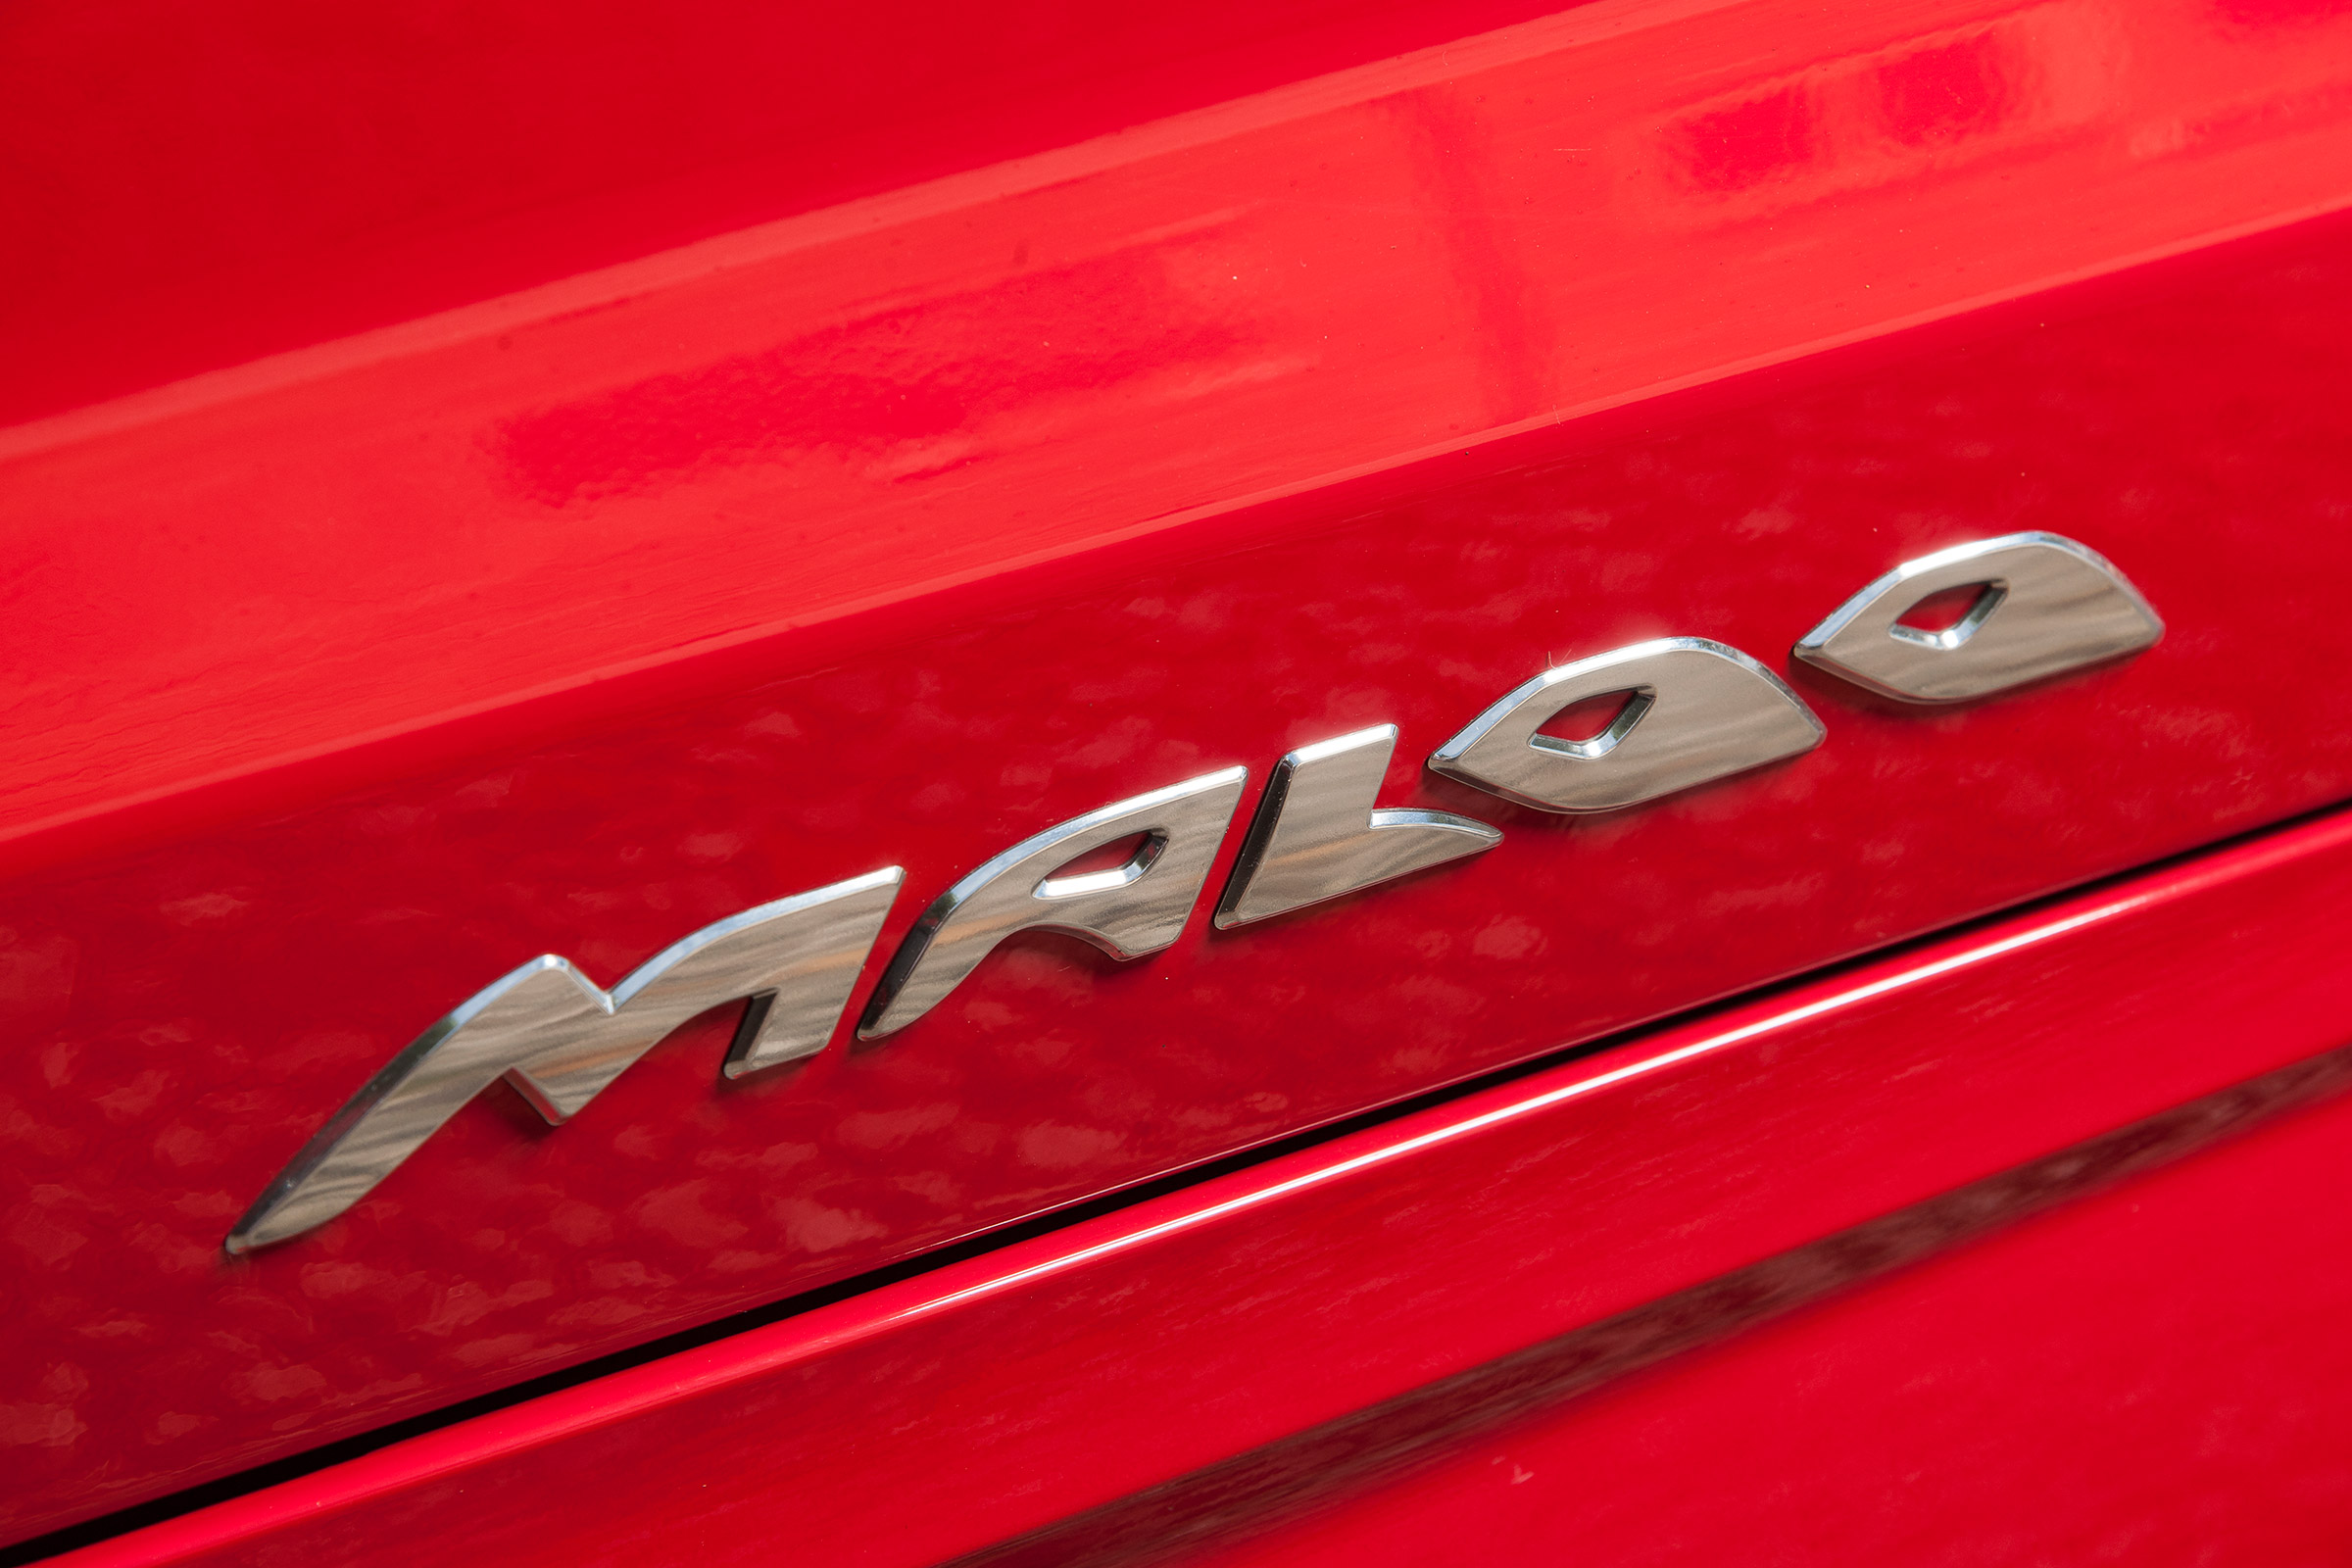 2017 Vauxhall VXR8 Maloo Exterior View Rear Badge (Photo 16 of 26)